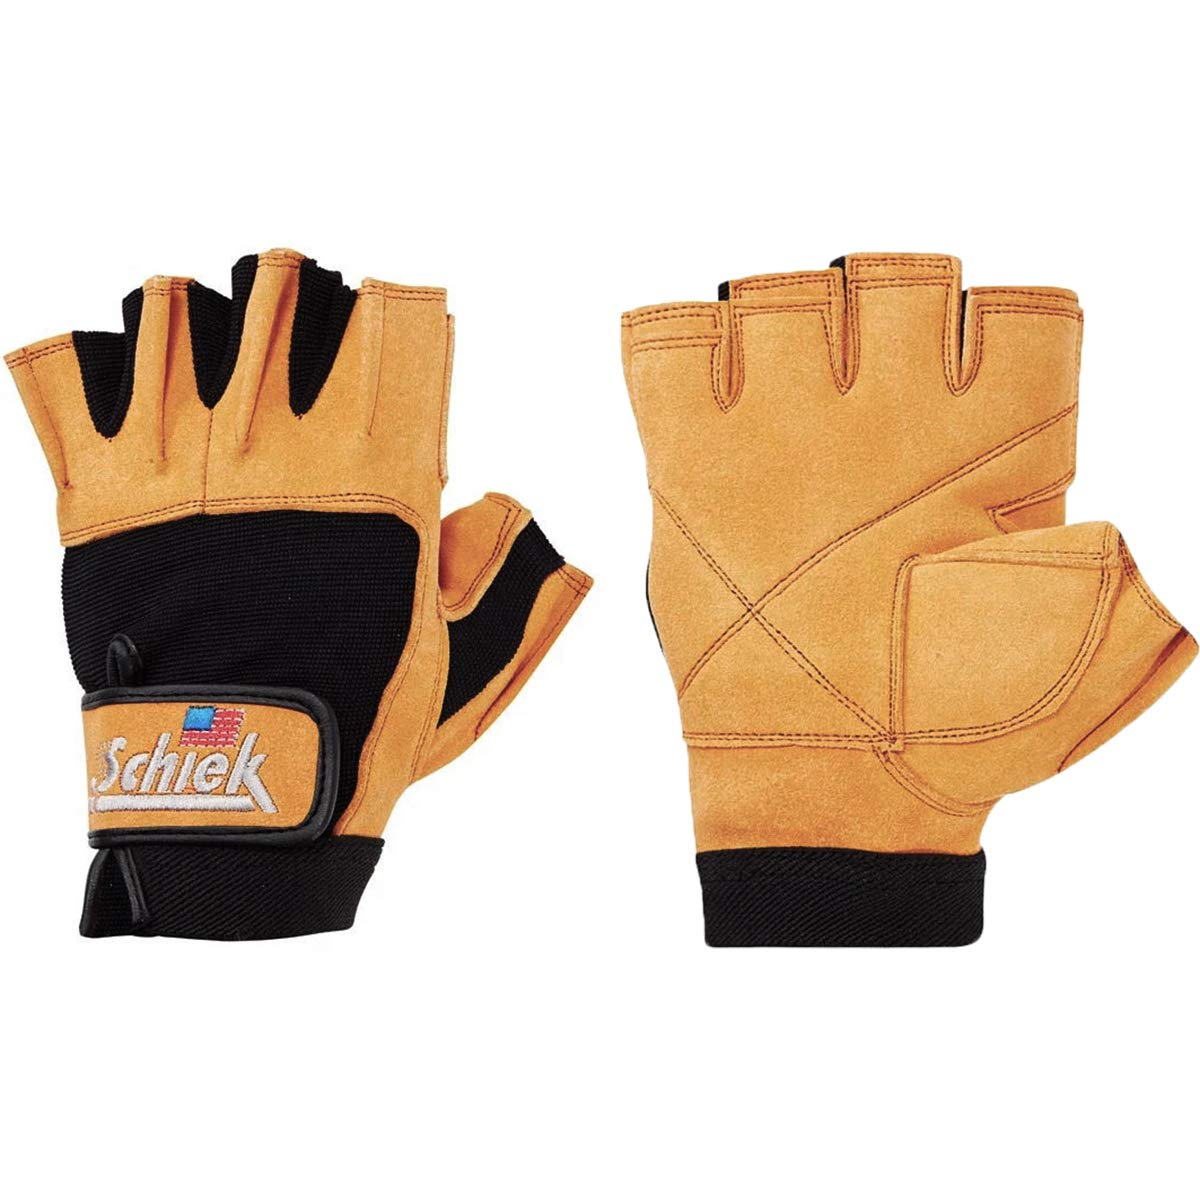 Schiek Sports Power 415 Medium